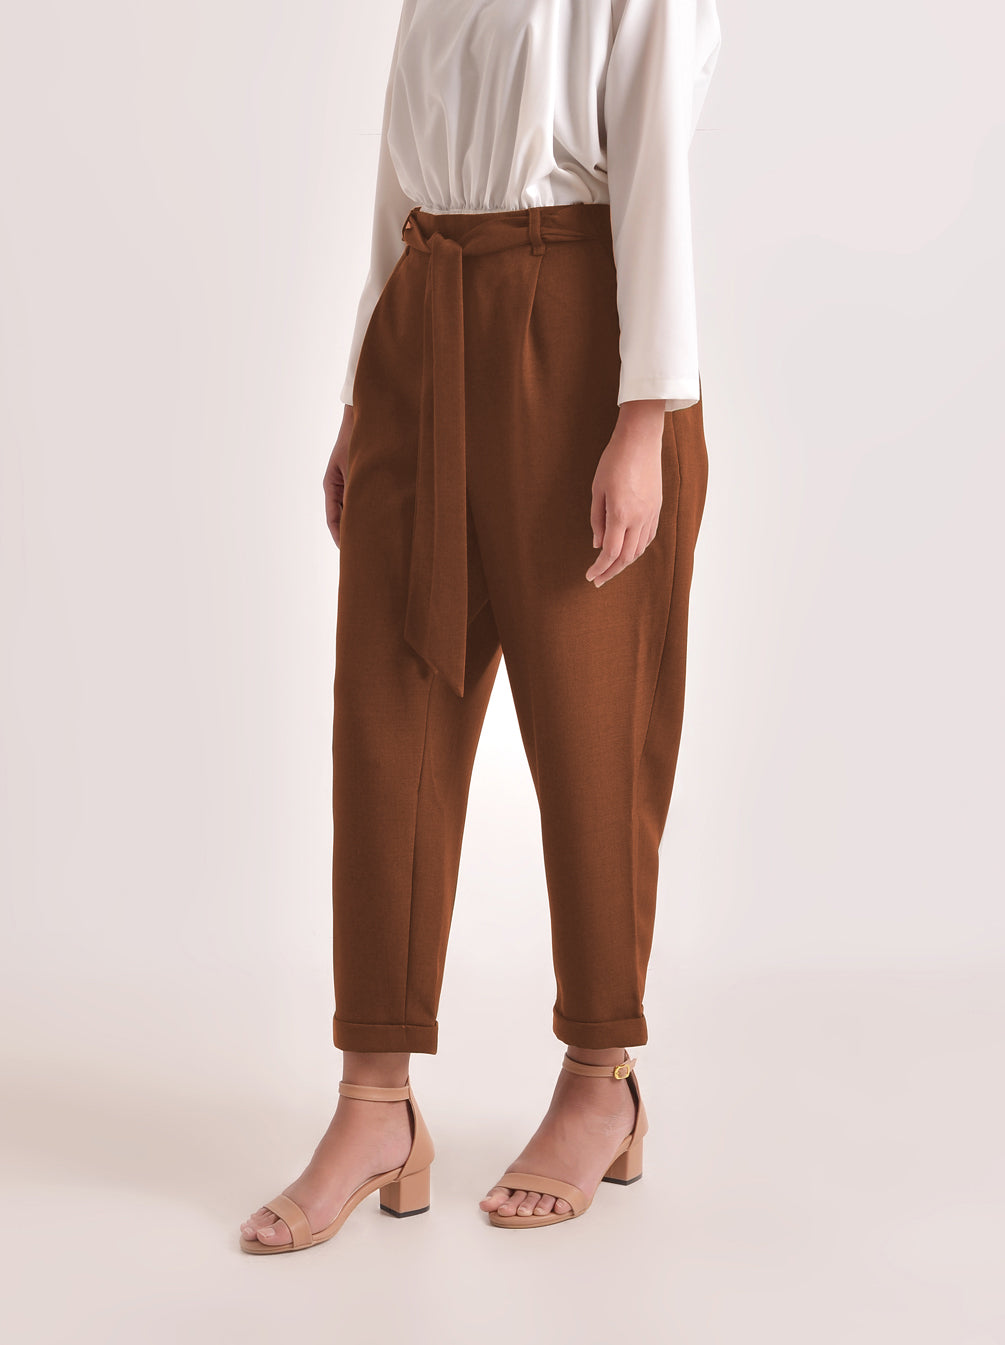 NEW SOJA PANTS TERRACOTA